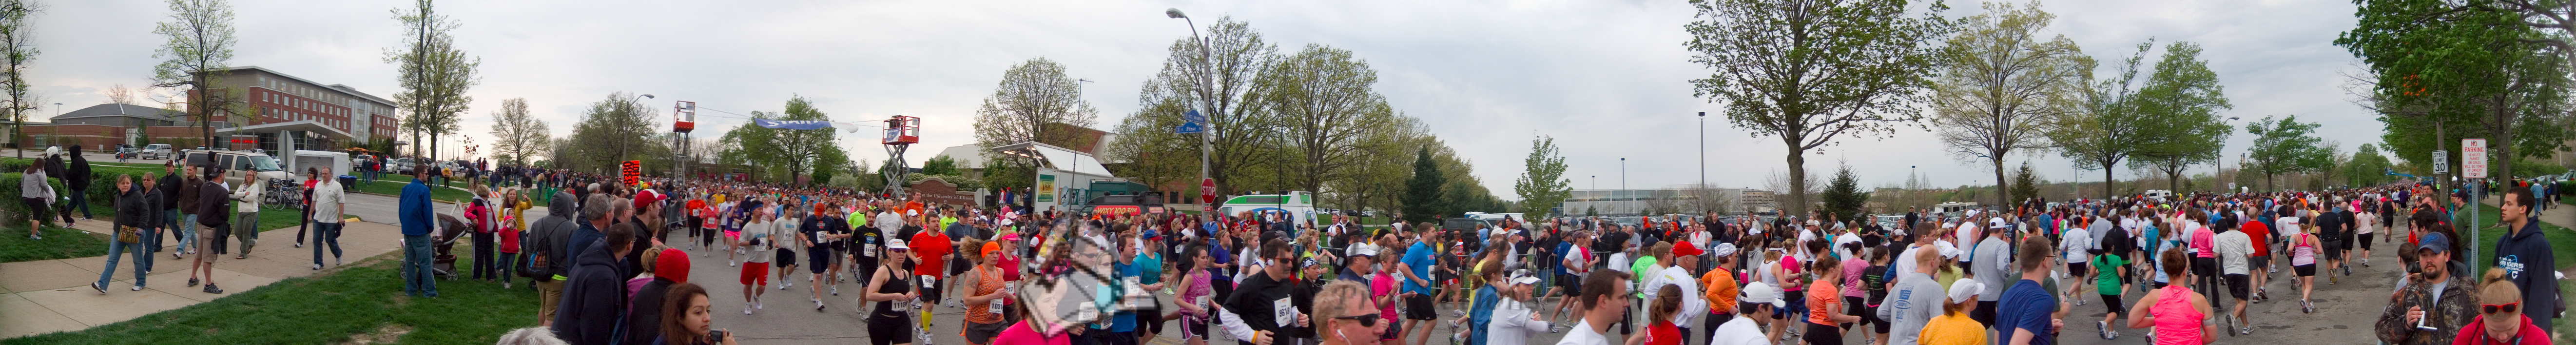 p71-1-p71-8half.jpg  Illinois Marathon 2011 Starting Line